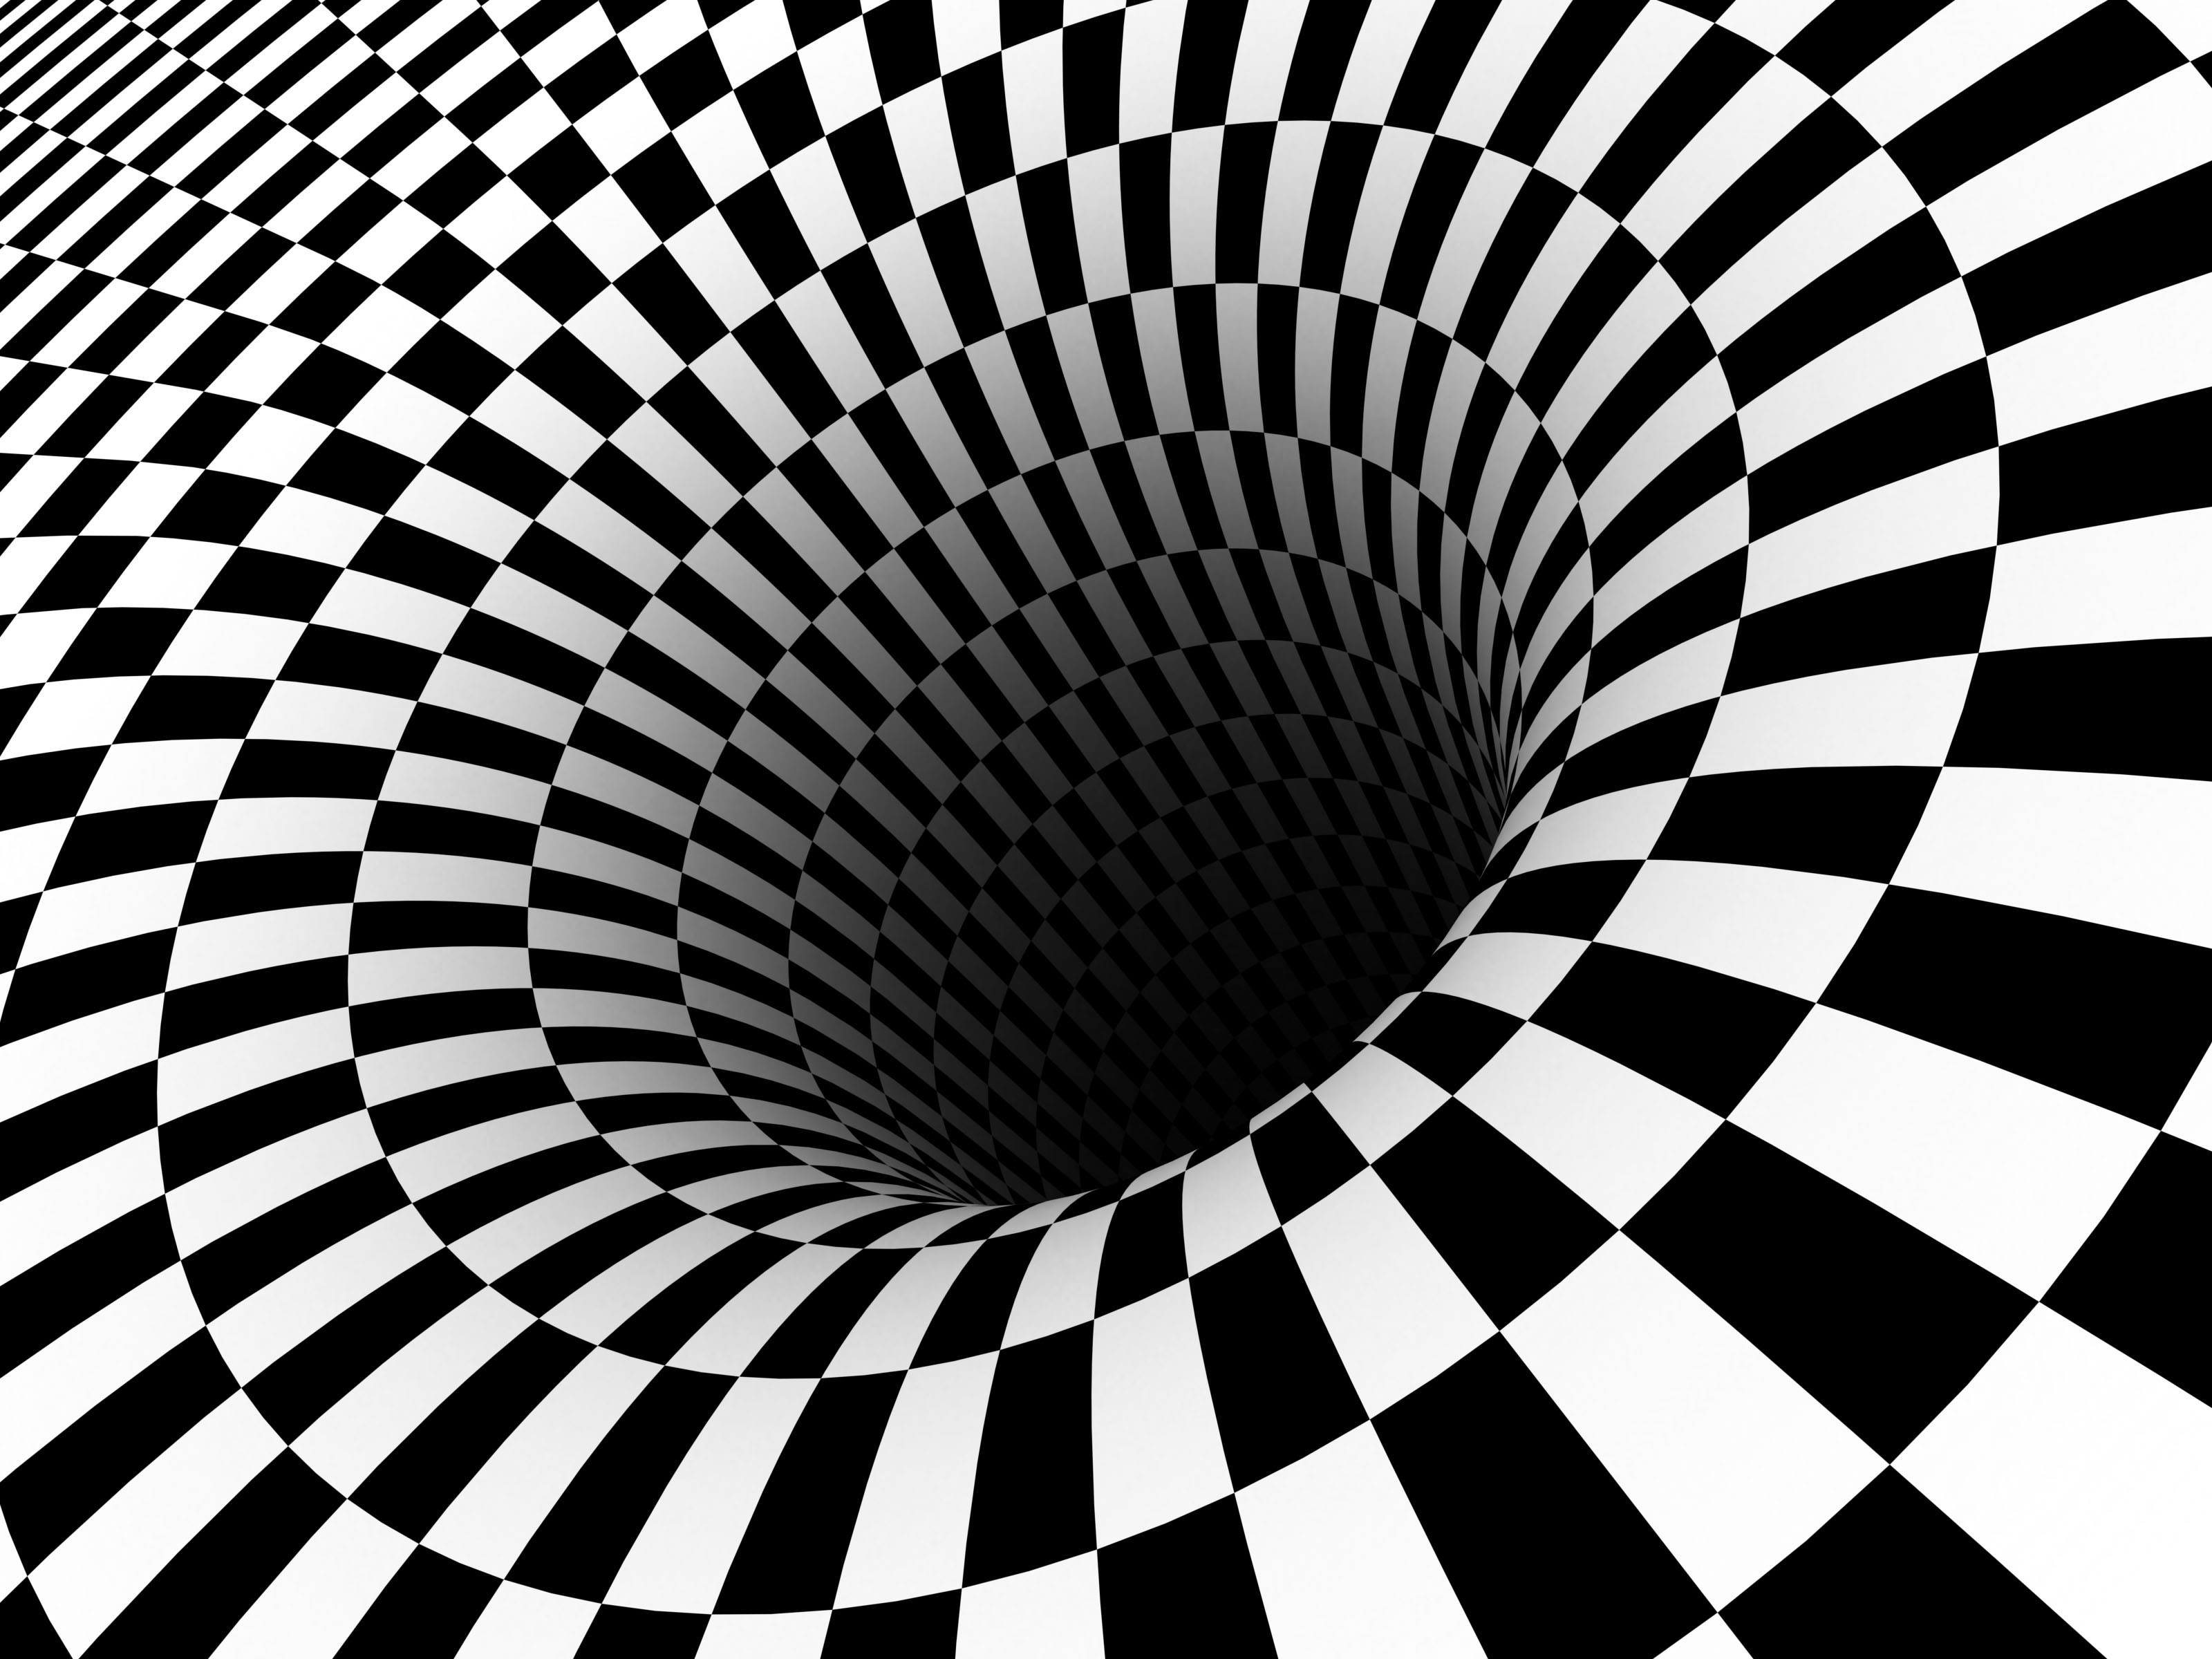 Drawn optical illusion hole in wall Wallpaper Wallpaper Wallpaper Illusions Wallpaper